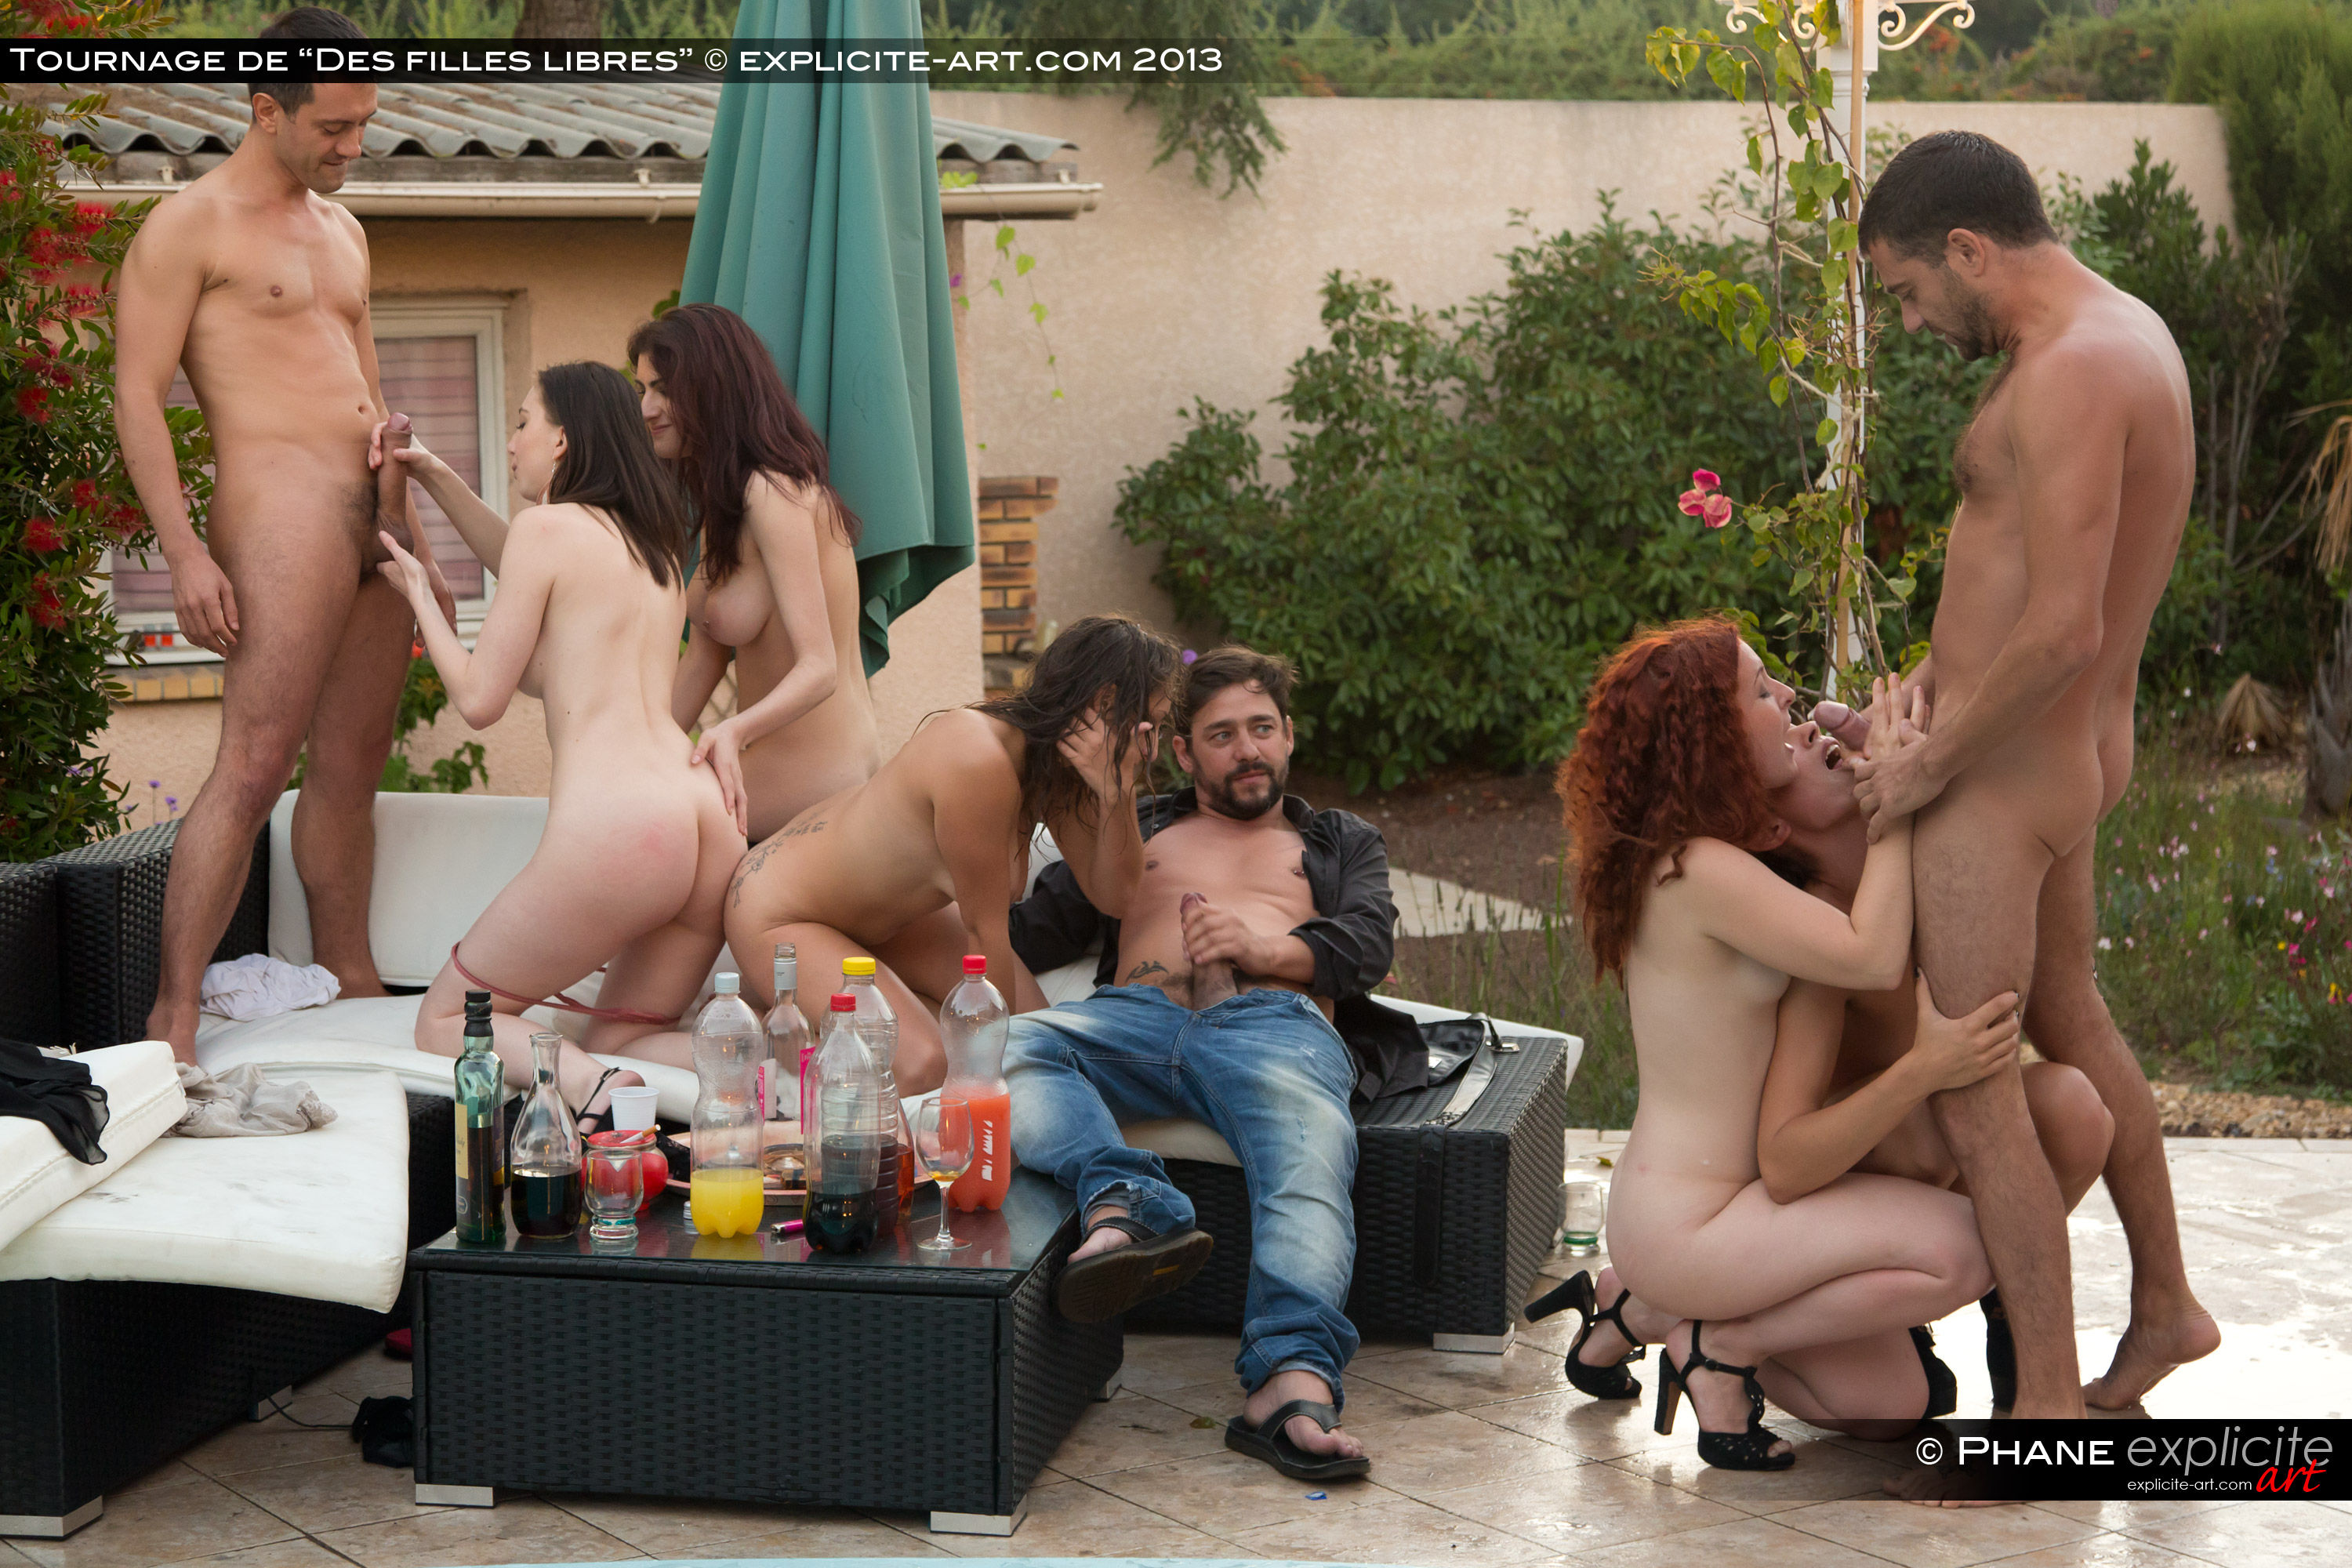 de film libres porn Jan 2014  Des Filles Libres is finally released!